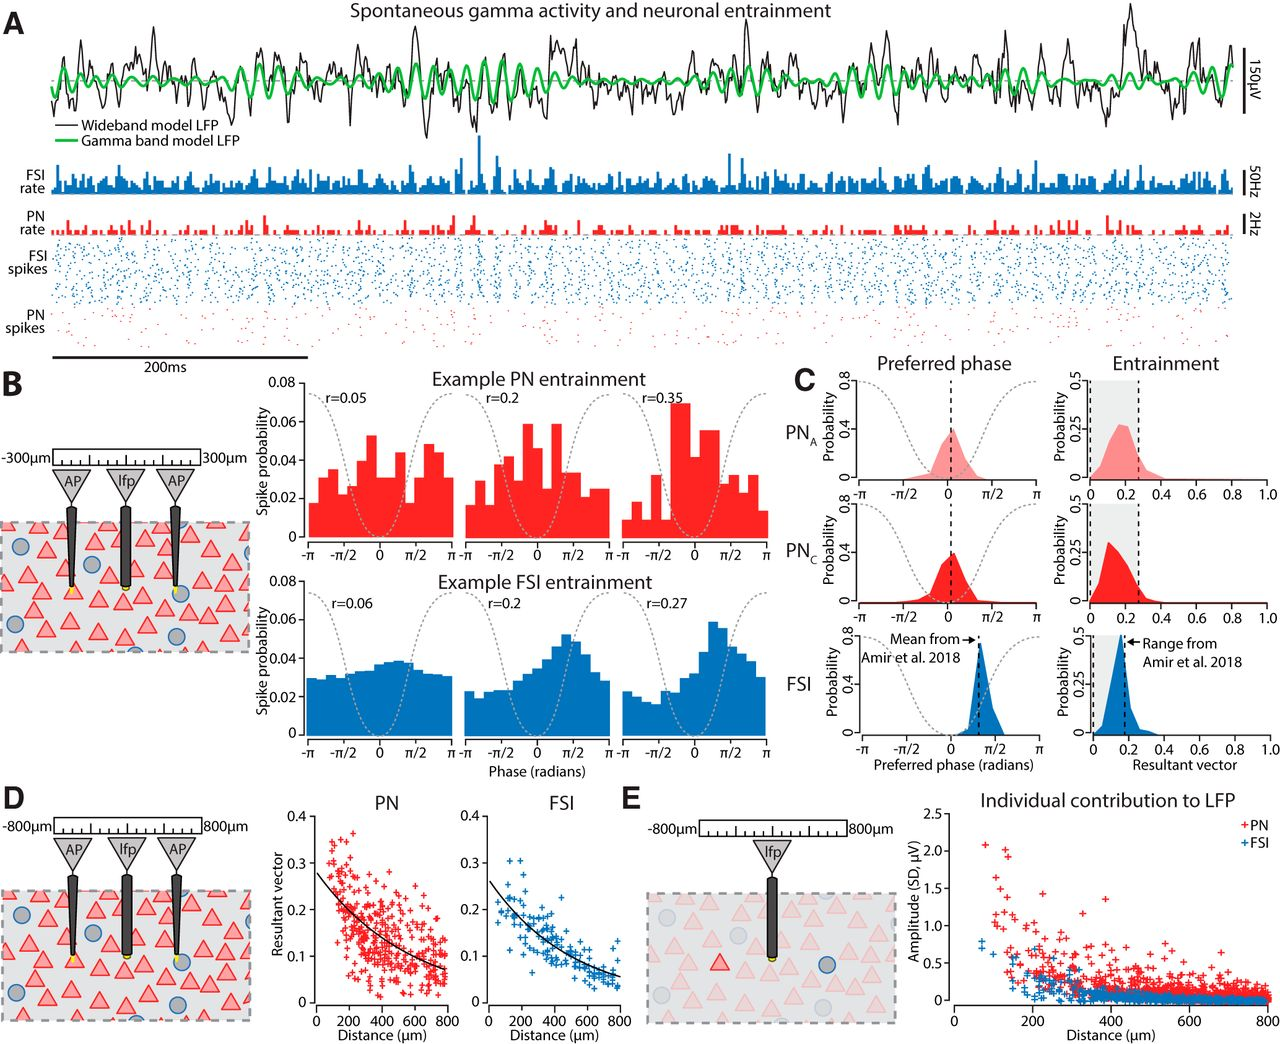 Gamma Oscillations in the Basolateral Amygdala: Biophysical